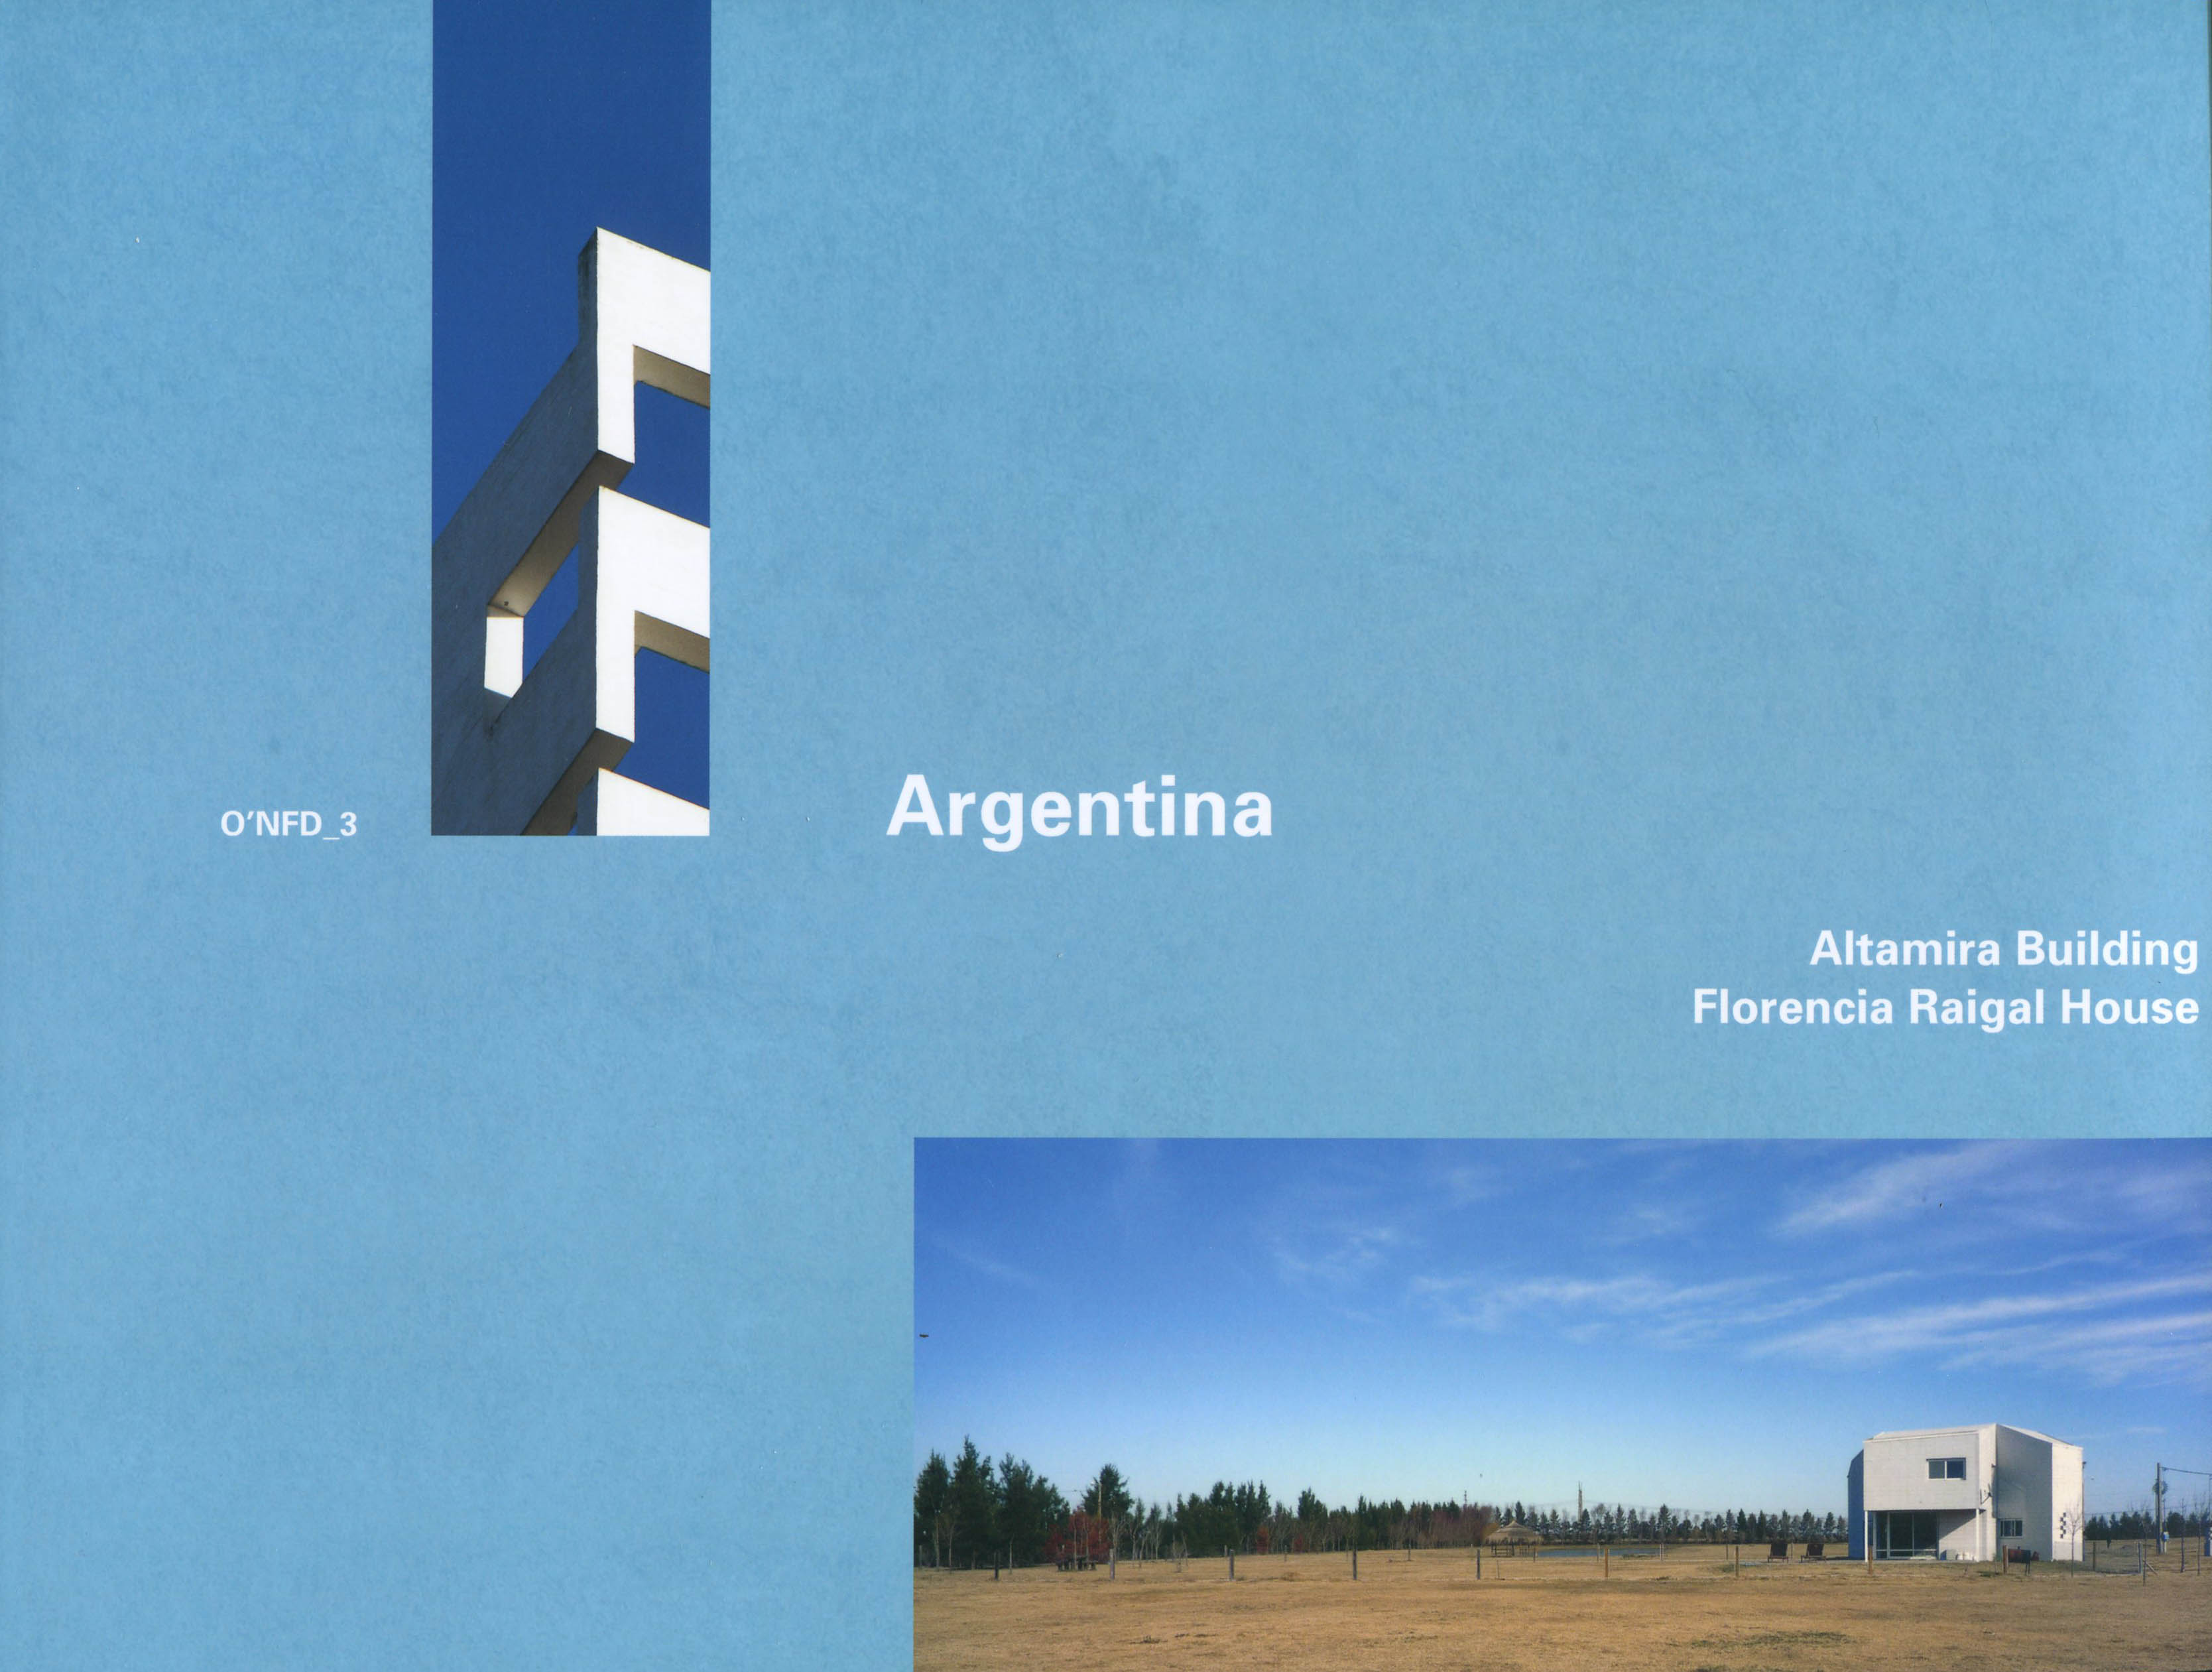 O'neil Ford Duograph Series, Volume 3: Argentina-Altamira Building, Florencia Raigal House cover